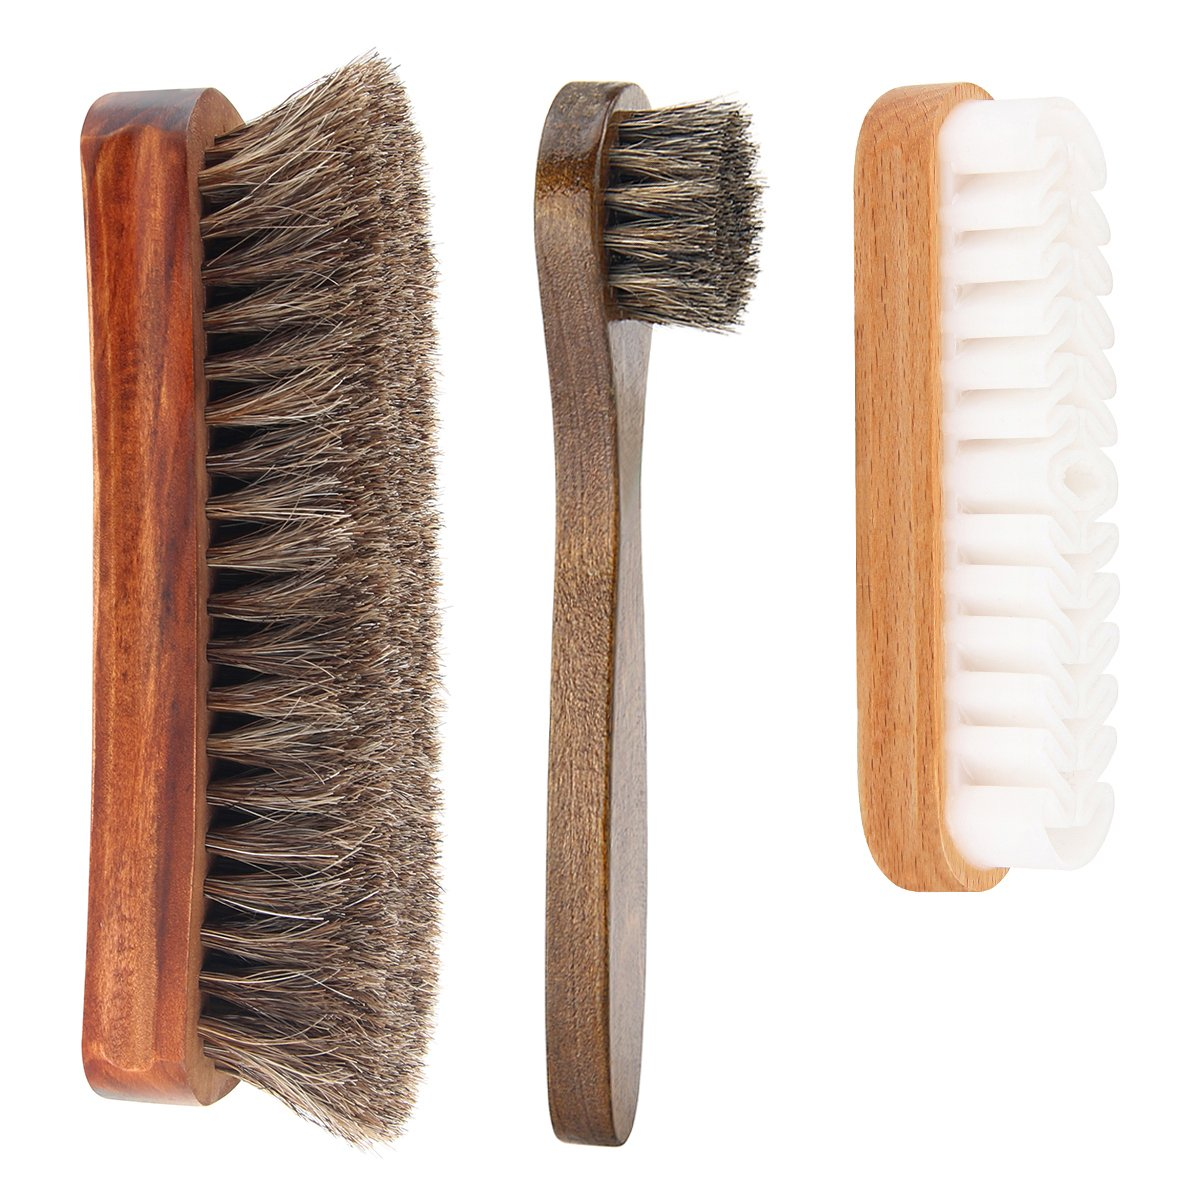 Shoe Shine Brush Kit, Scheam Pack of 3 Soft Horsehair Brush Shoe Dauber and Suede Brush for Men's Women's